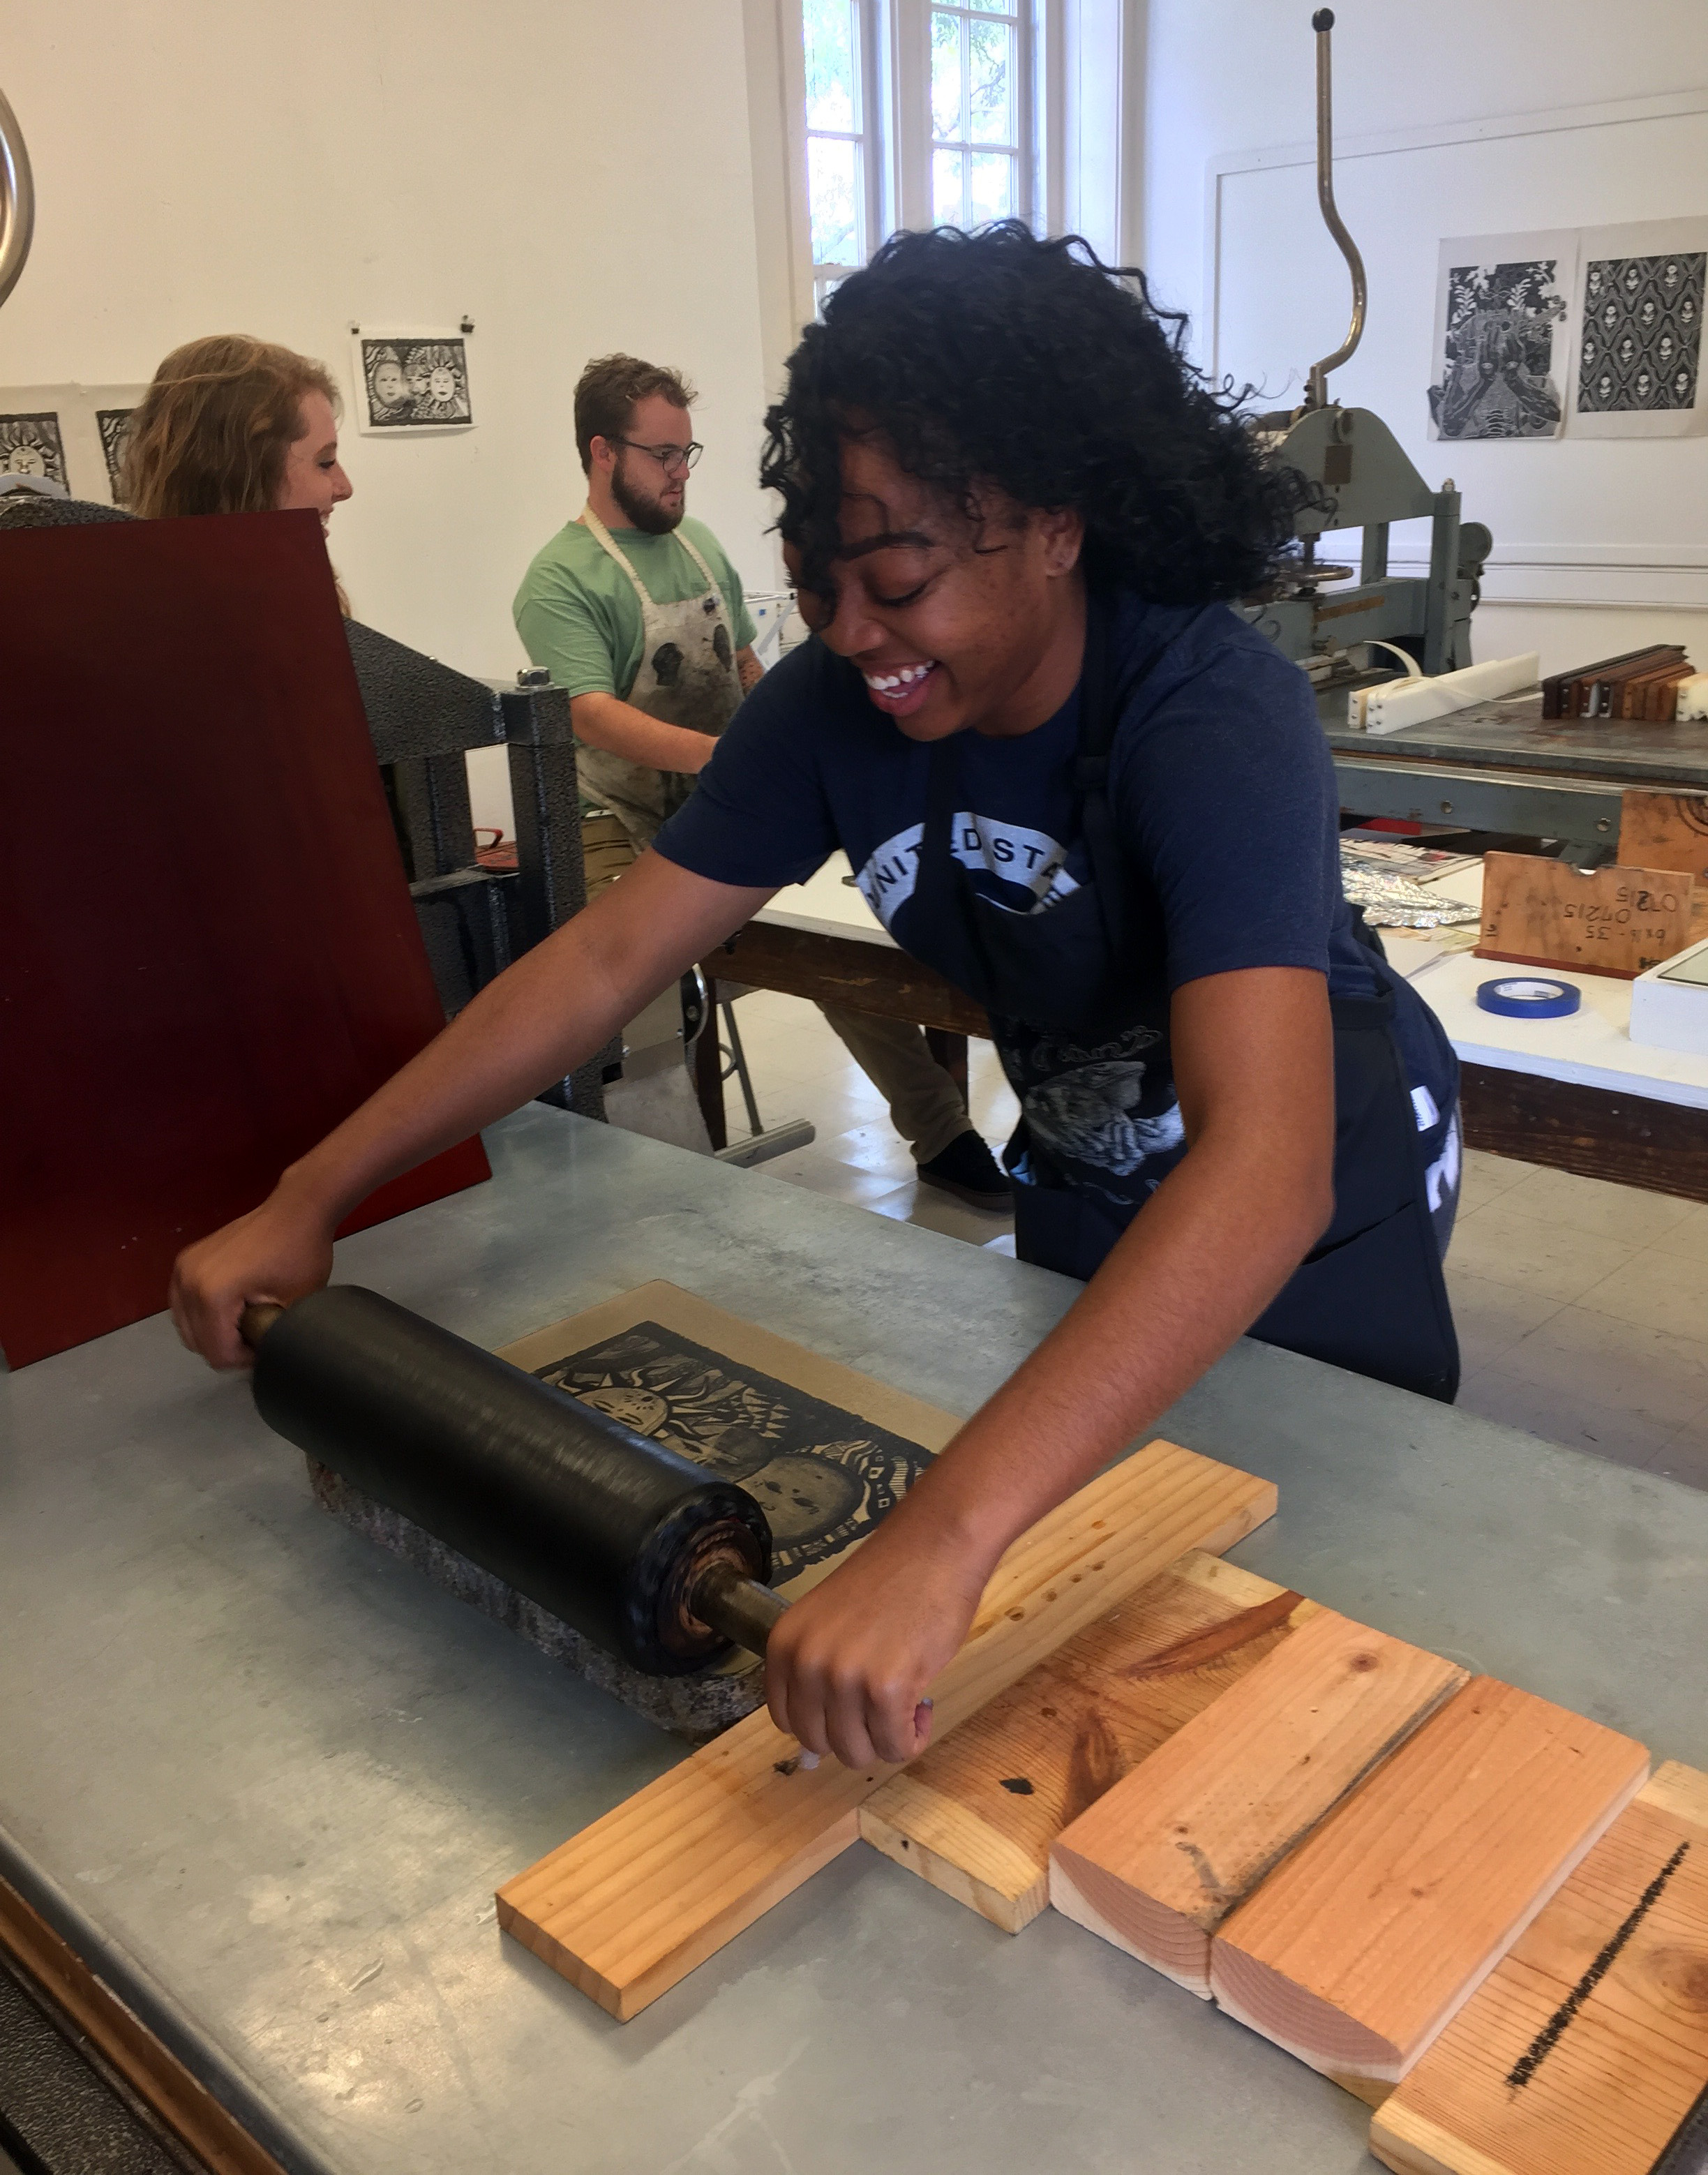 Kenya Russel, ART 321 Lithography, rolls up her stone in the litho shop.